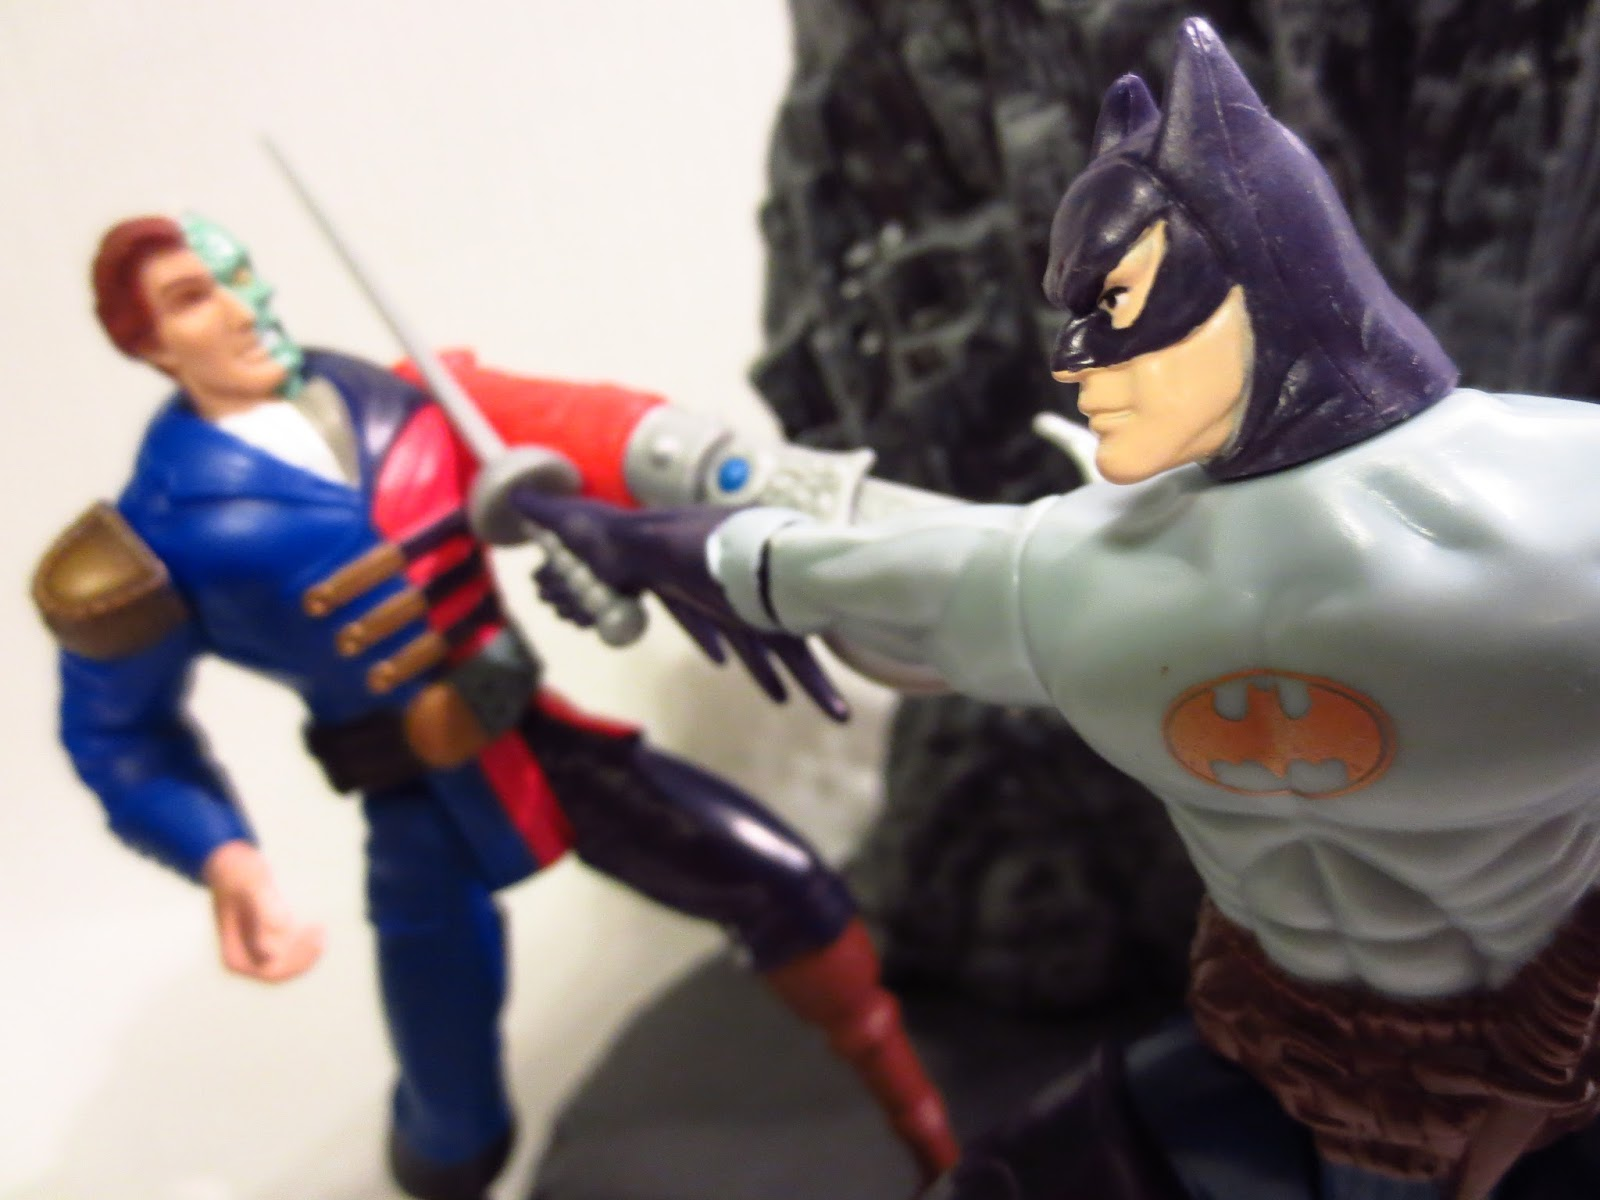 Pirate batman and pirate two face from legends of batman by kenner